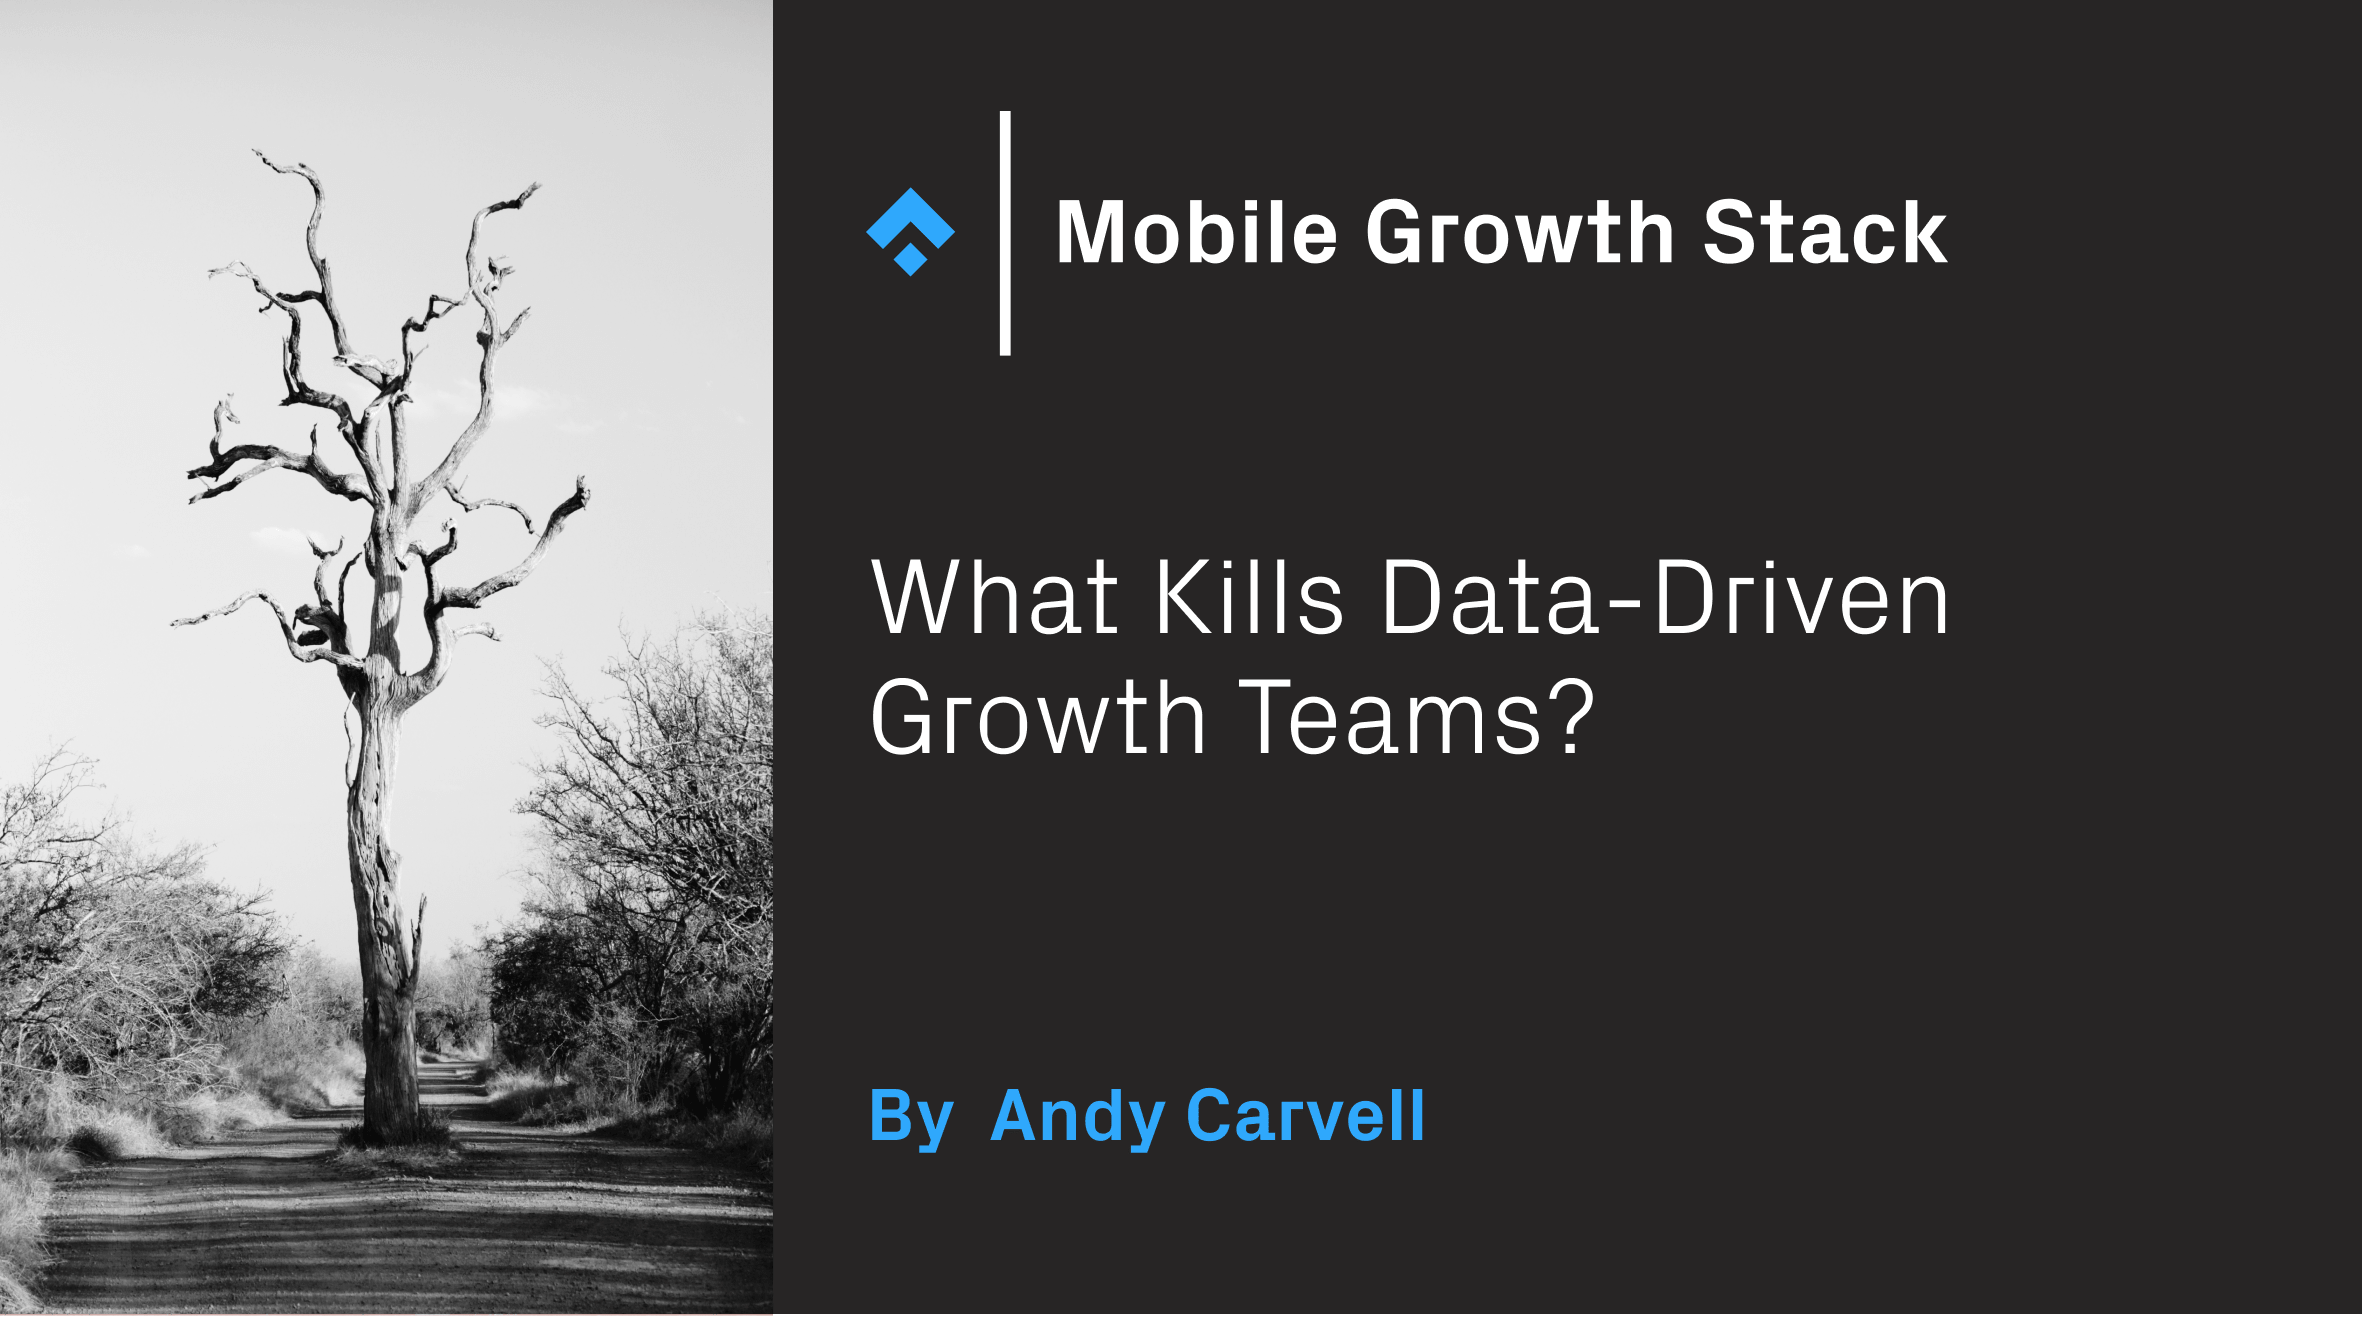 What Kills Data-Driven Growth Teams? by Andy Carvell